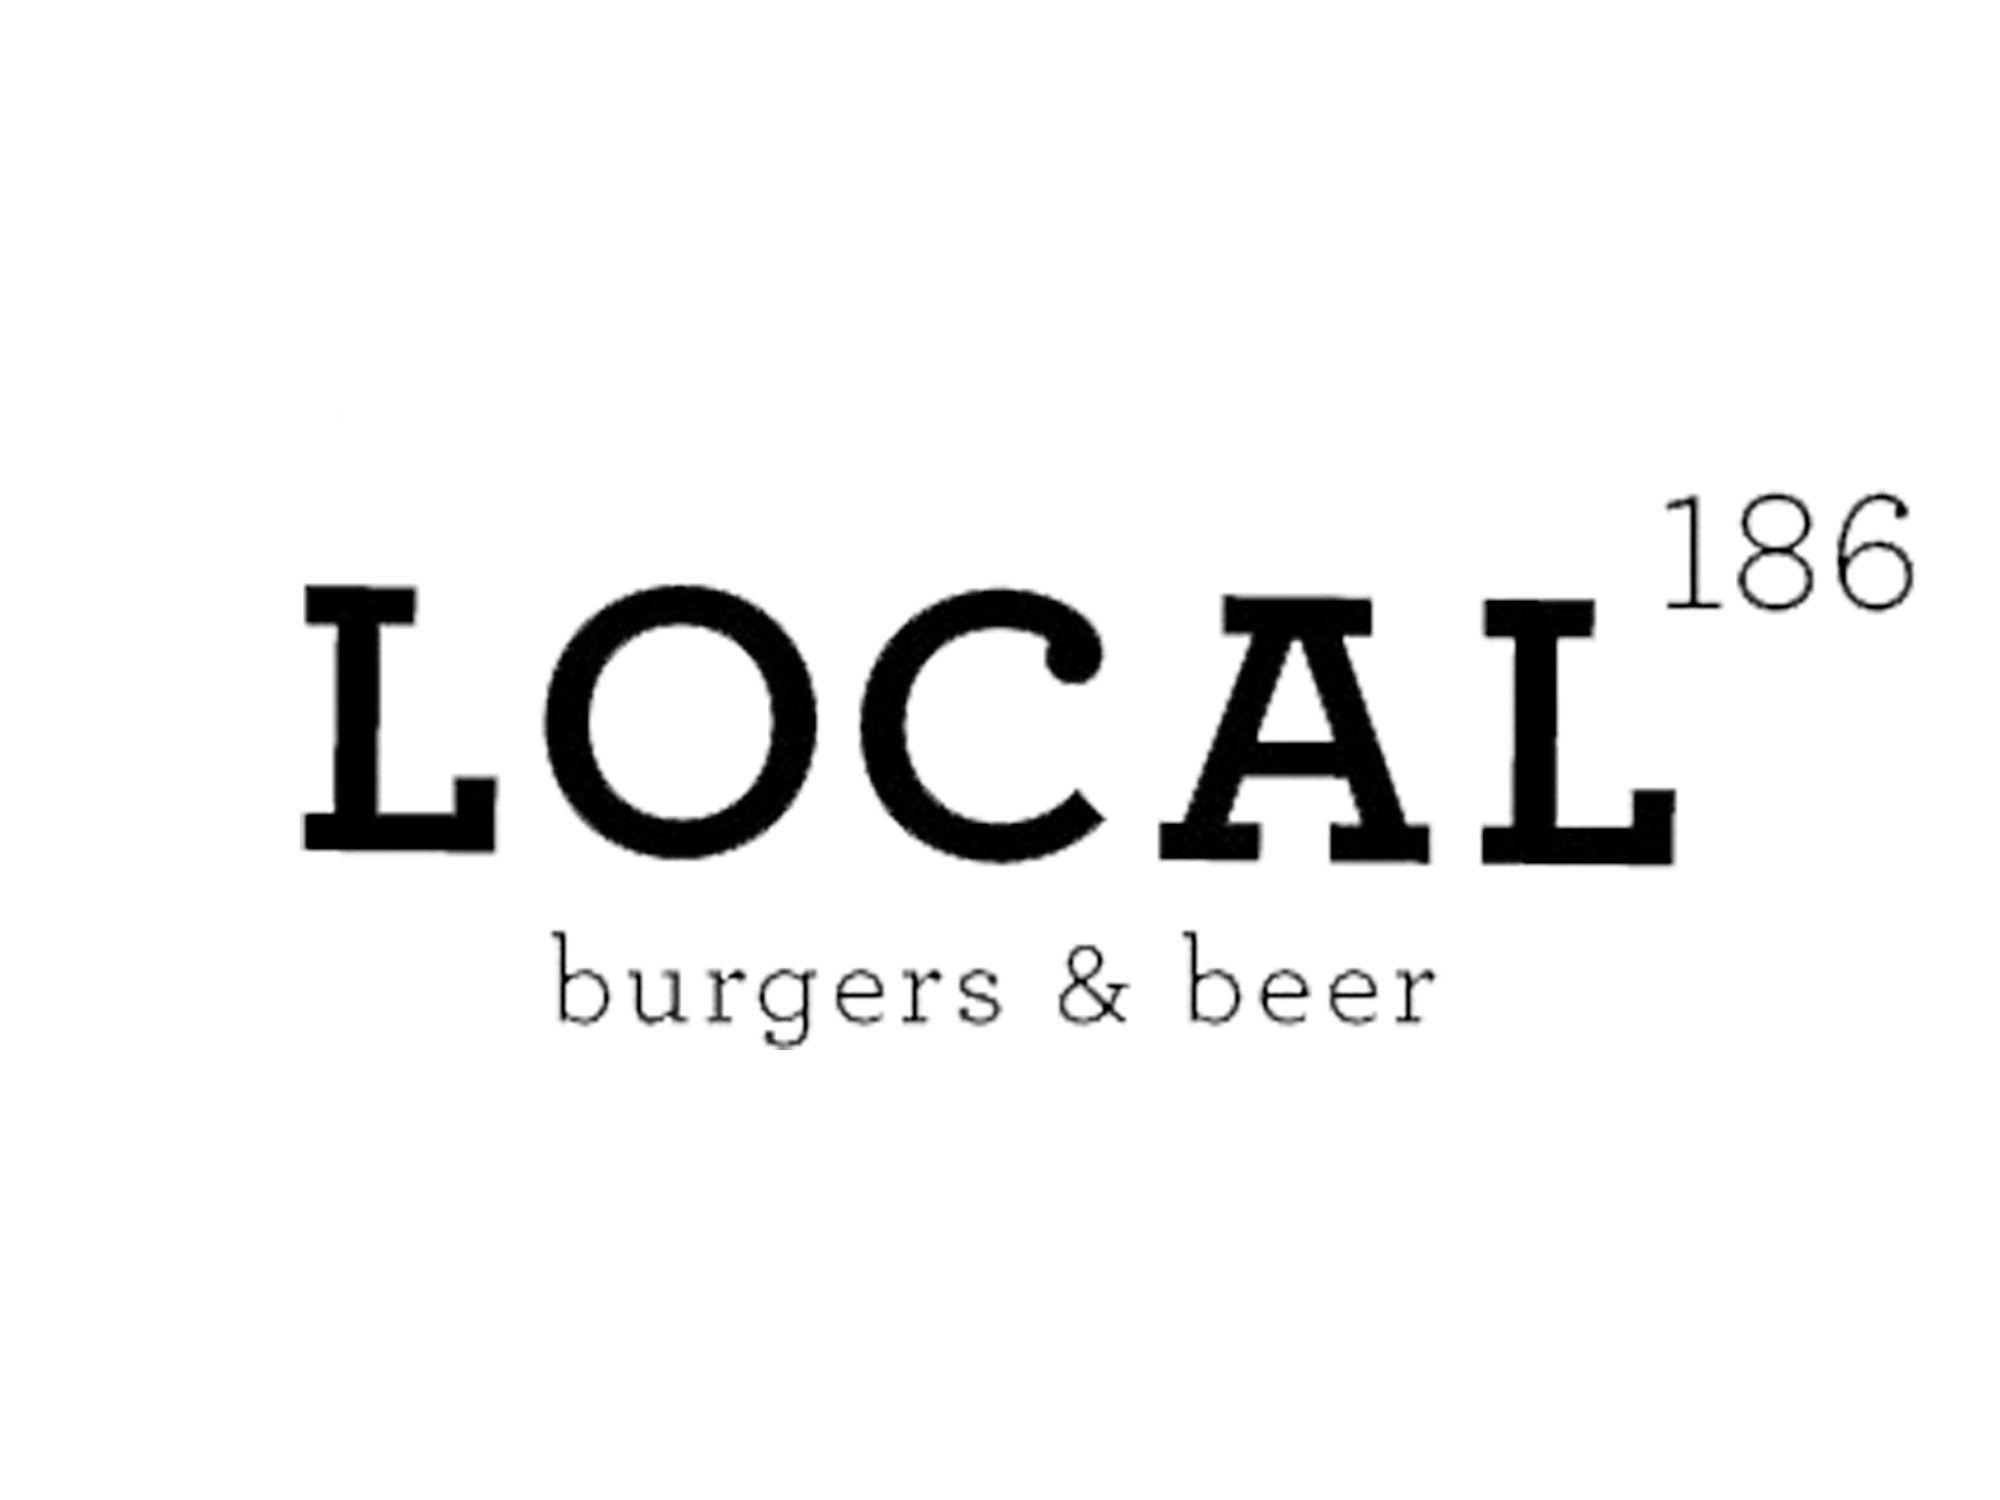 local-186.png